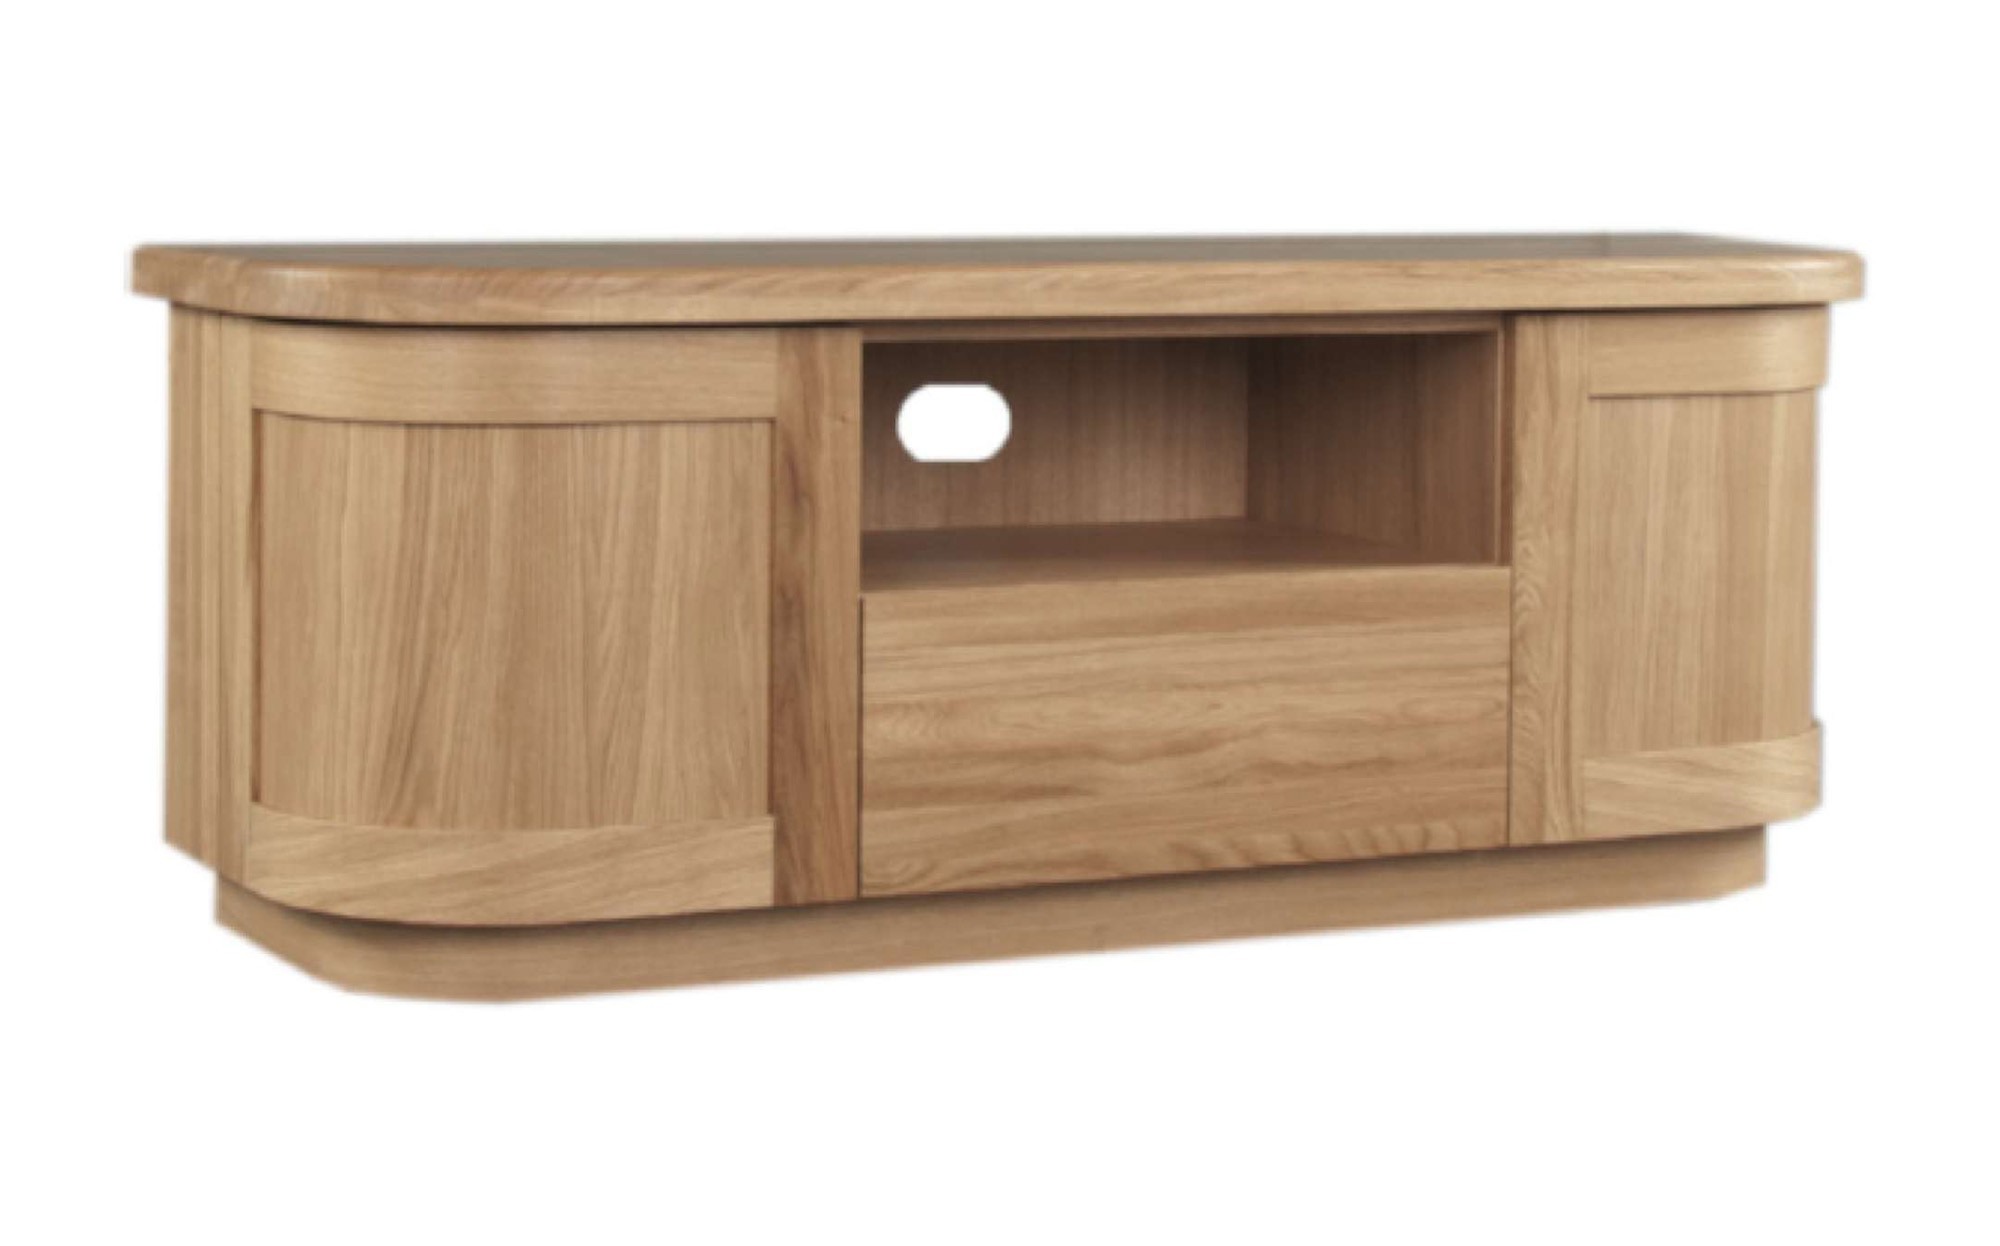 Cheap Oak Tv Stands Intended For Most Popular Unfinished Wood Corner Tv Stand Rustic Wooden Stands Diy Kits Solid (View 7 of 20)